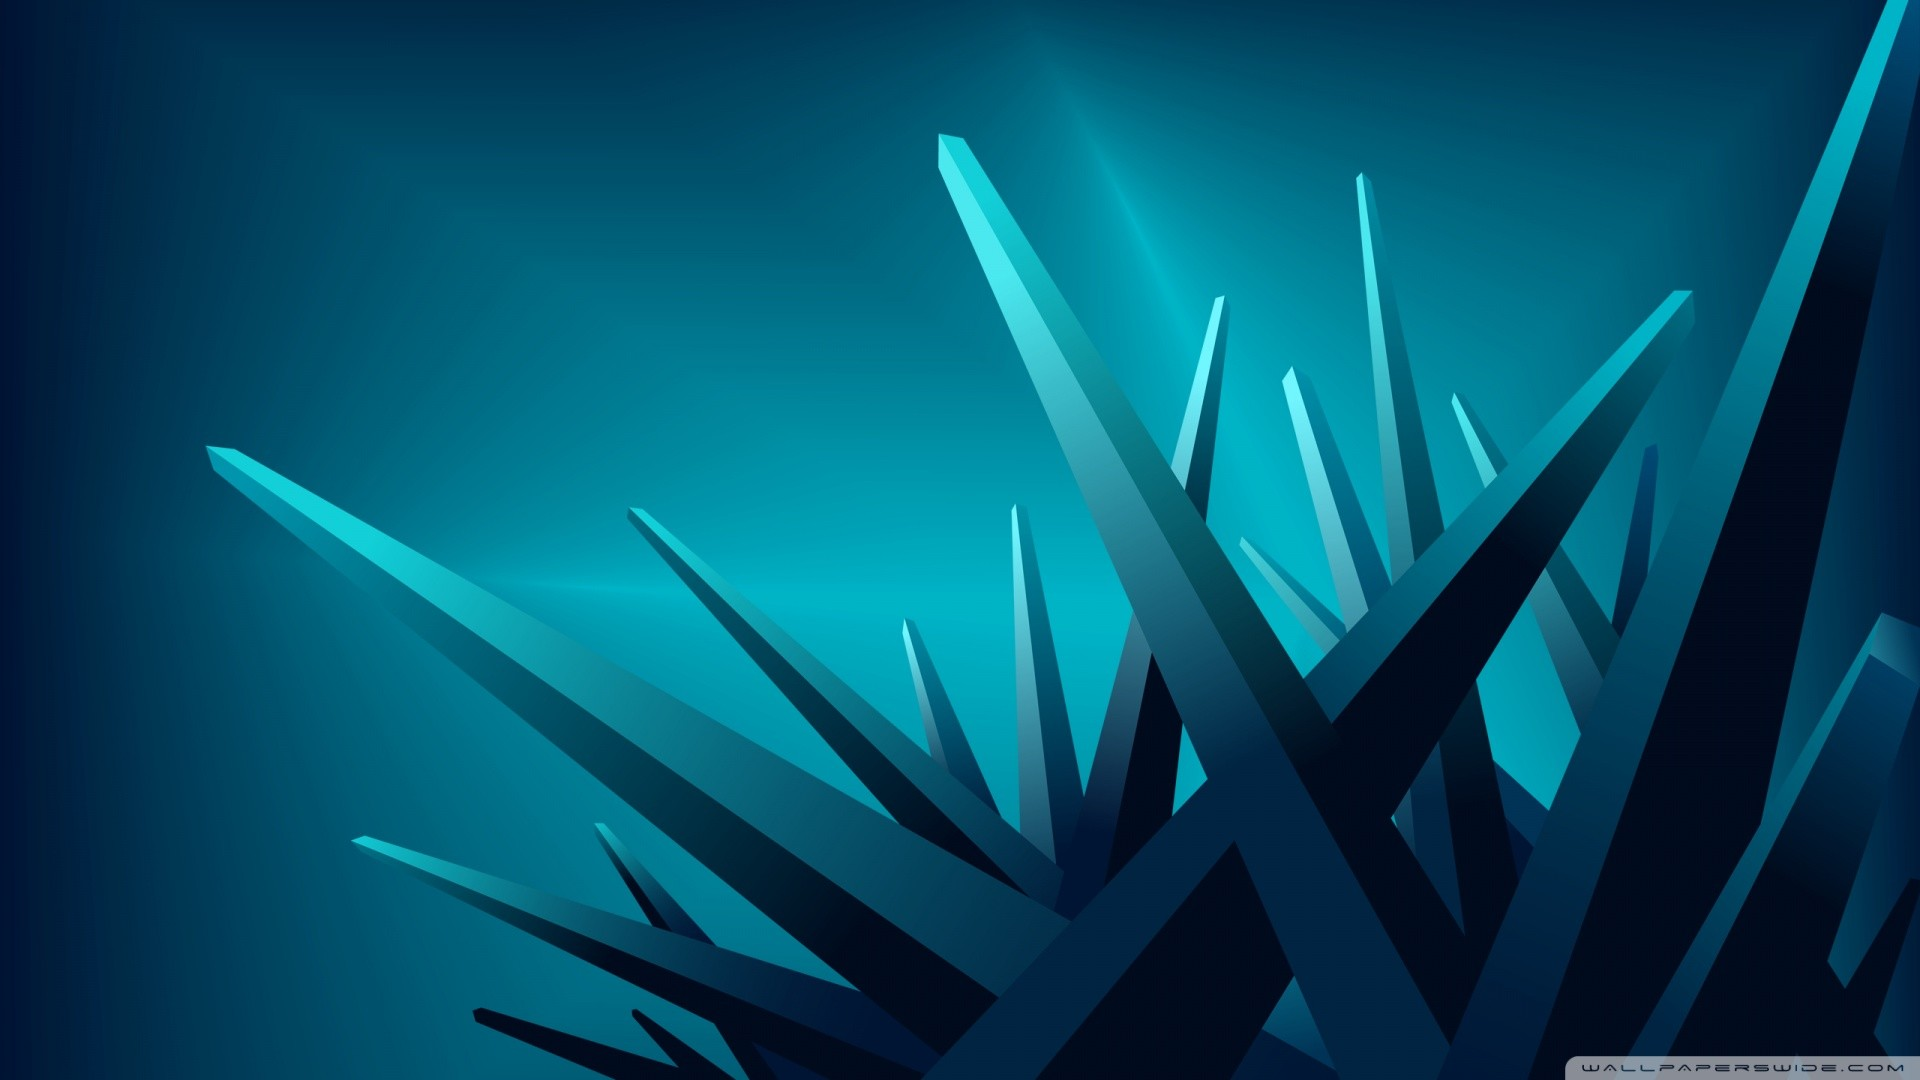 blue_3d_crystals-wallpaper-1920×1080. more info view larger